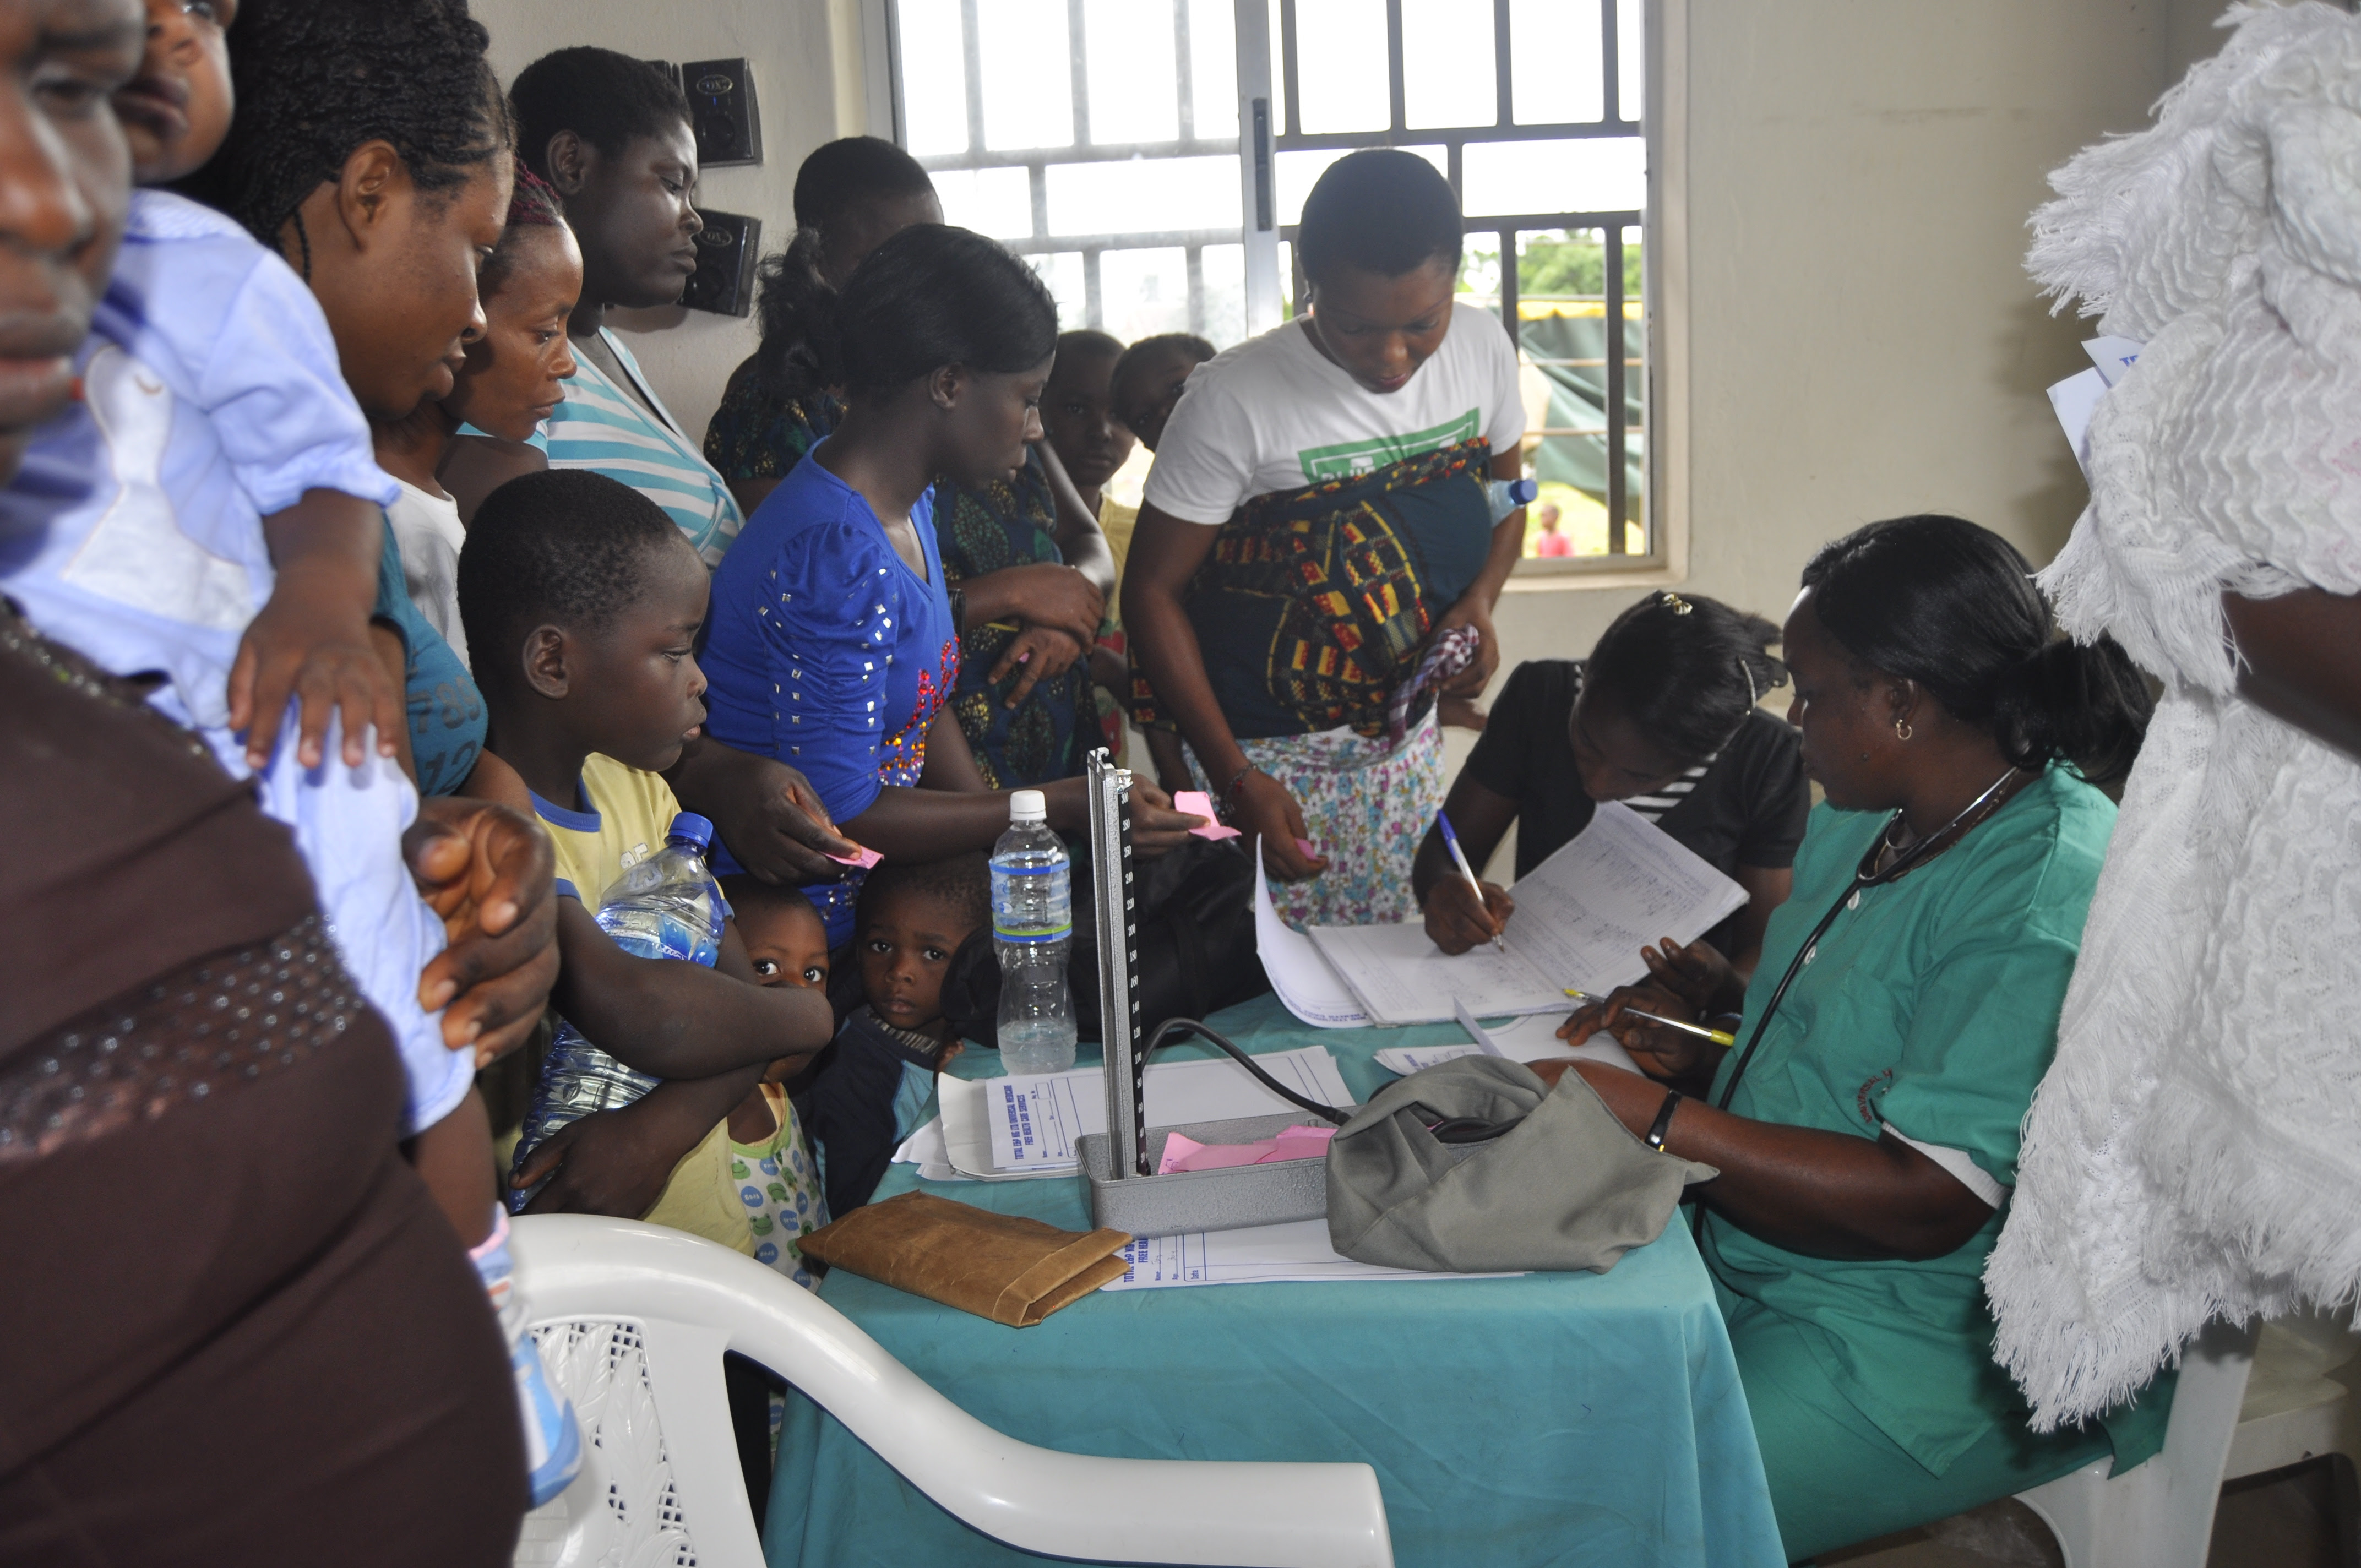 Lagos sanctions public health workers for selling free drugs to patients - Ventures Africa